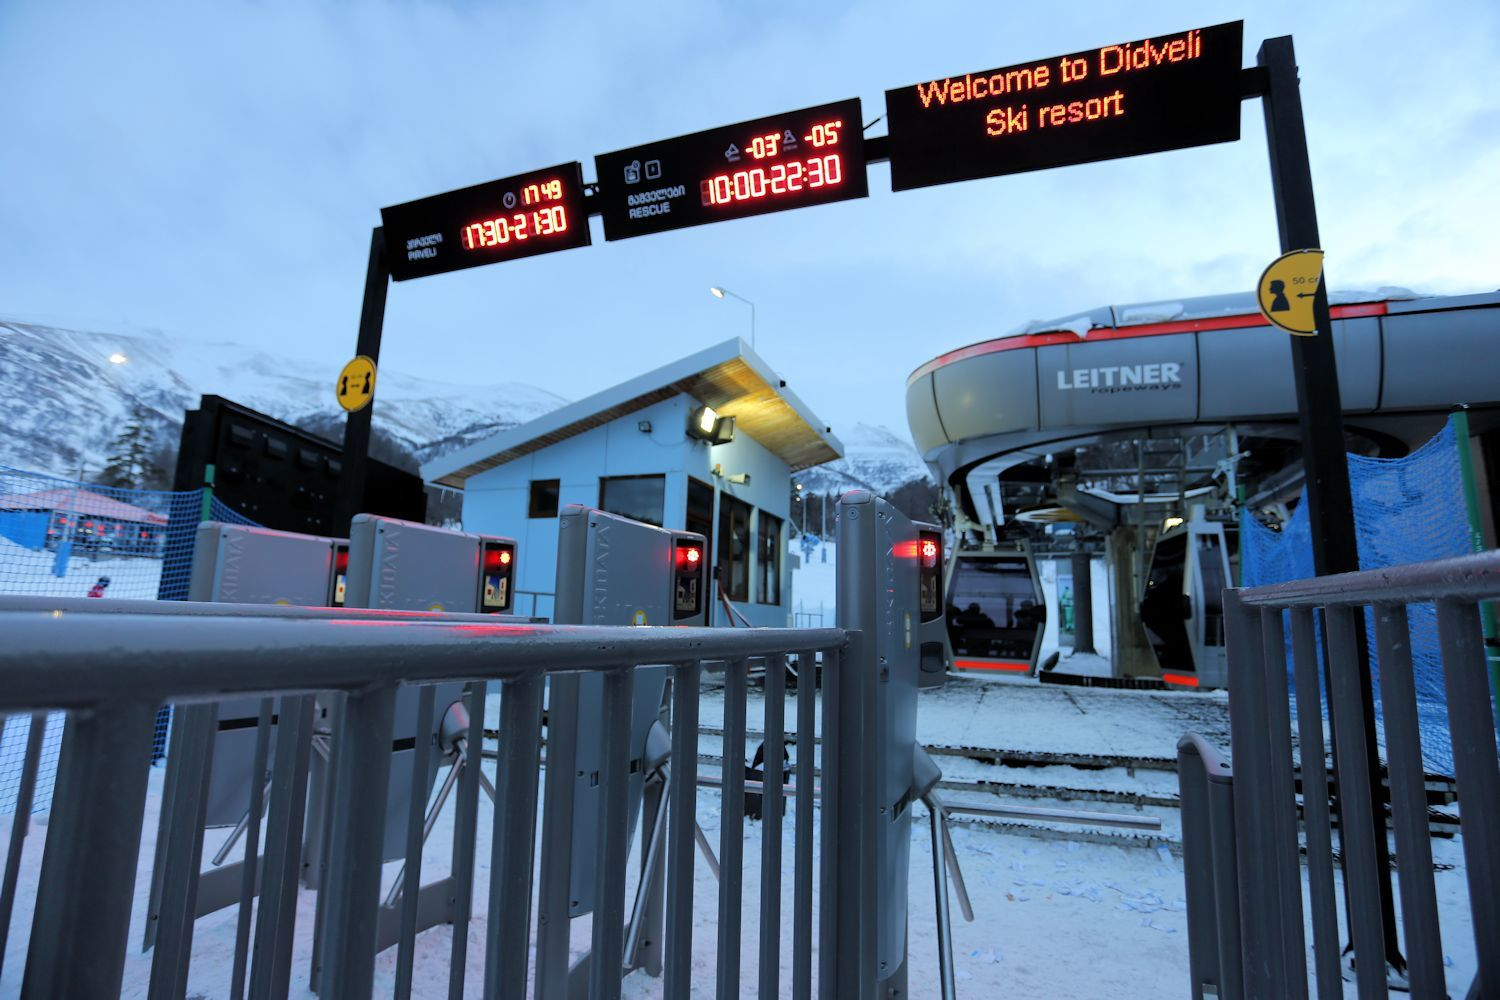 Second lift in Bakuriani, closed at 5 p.m.